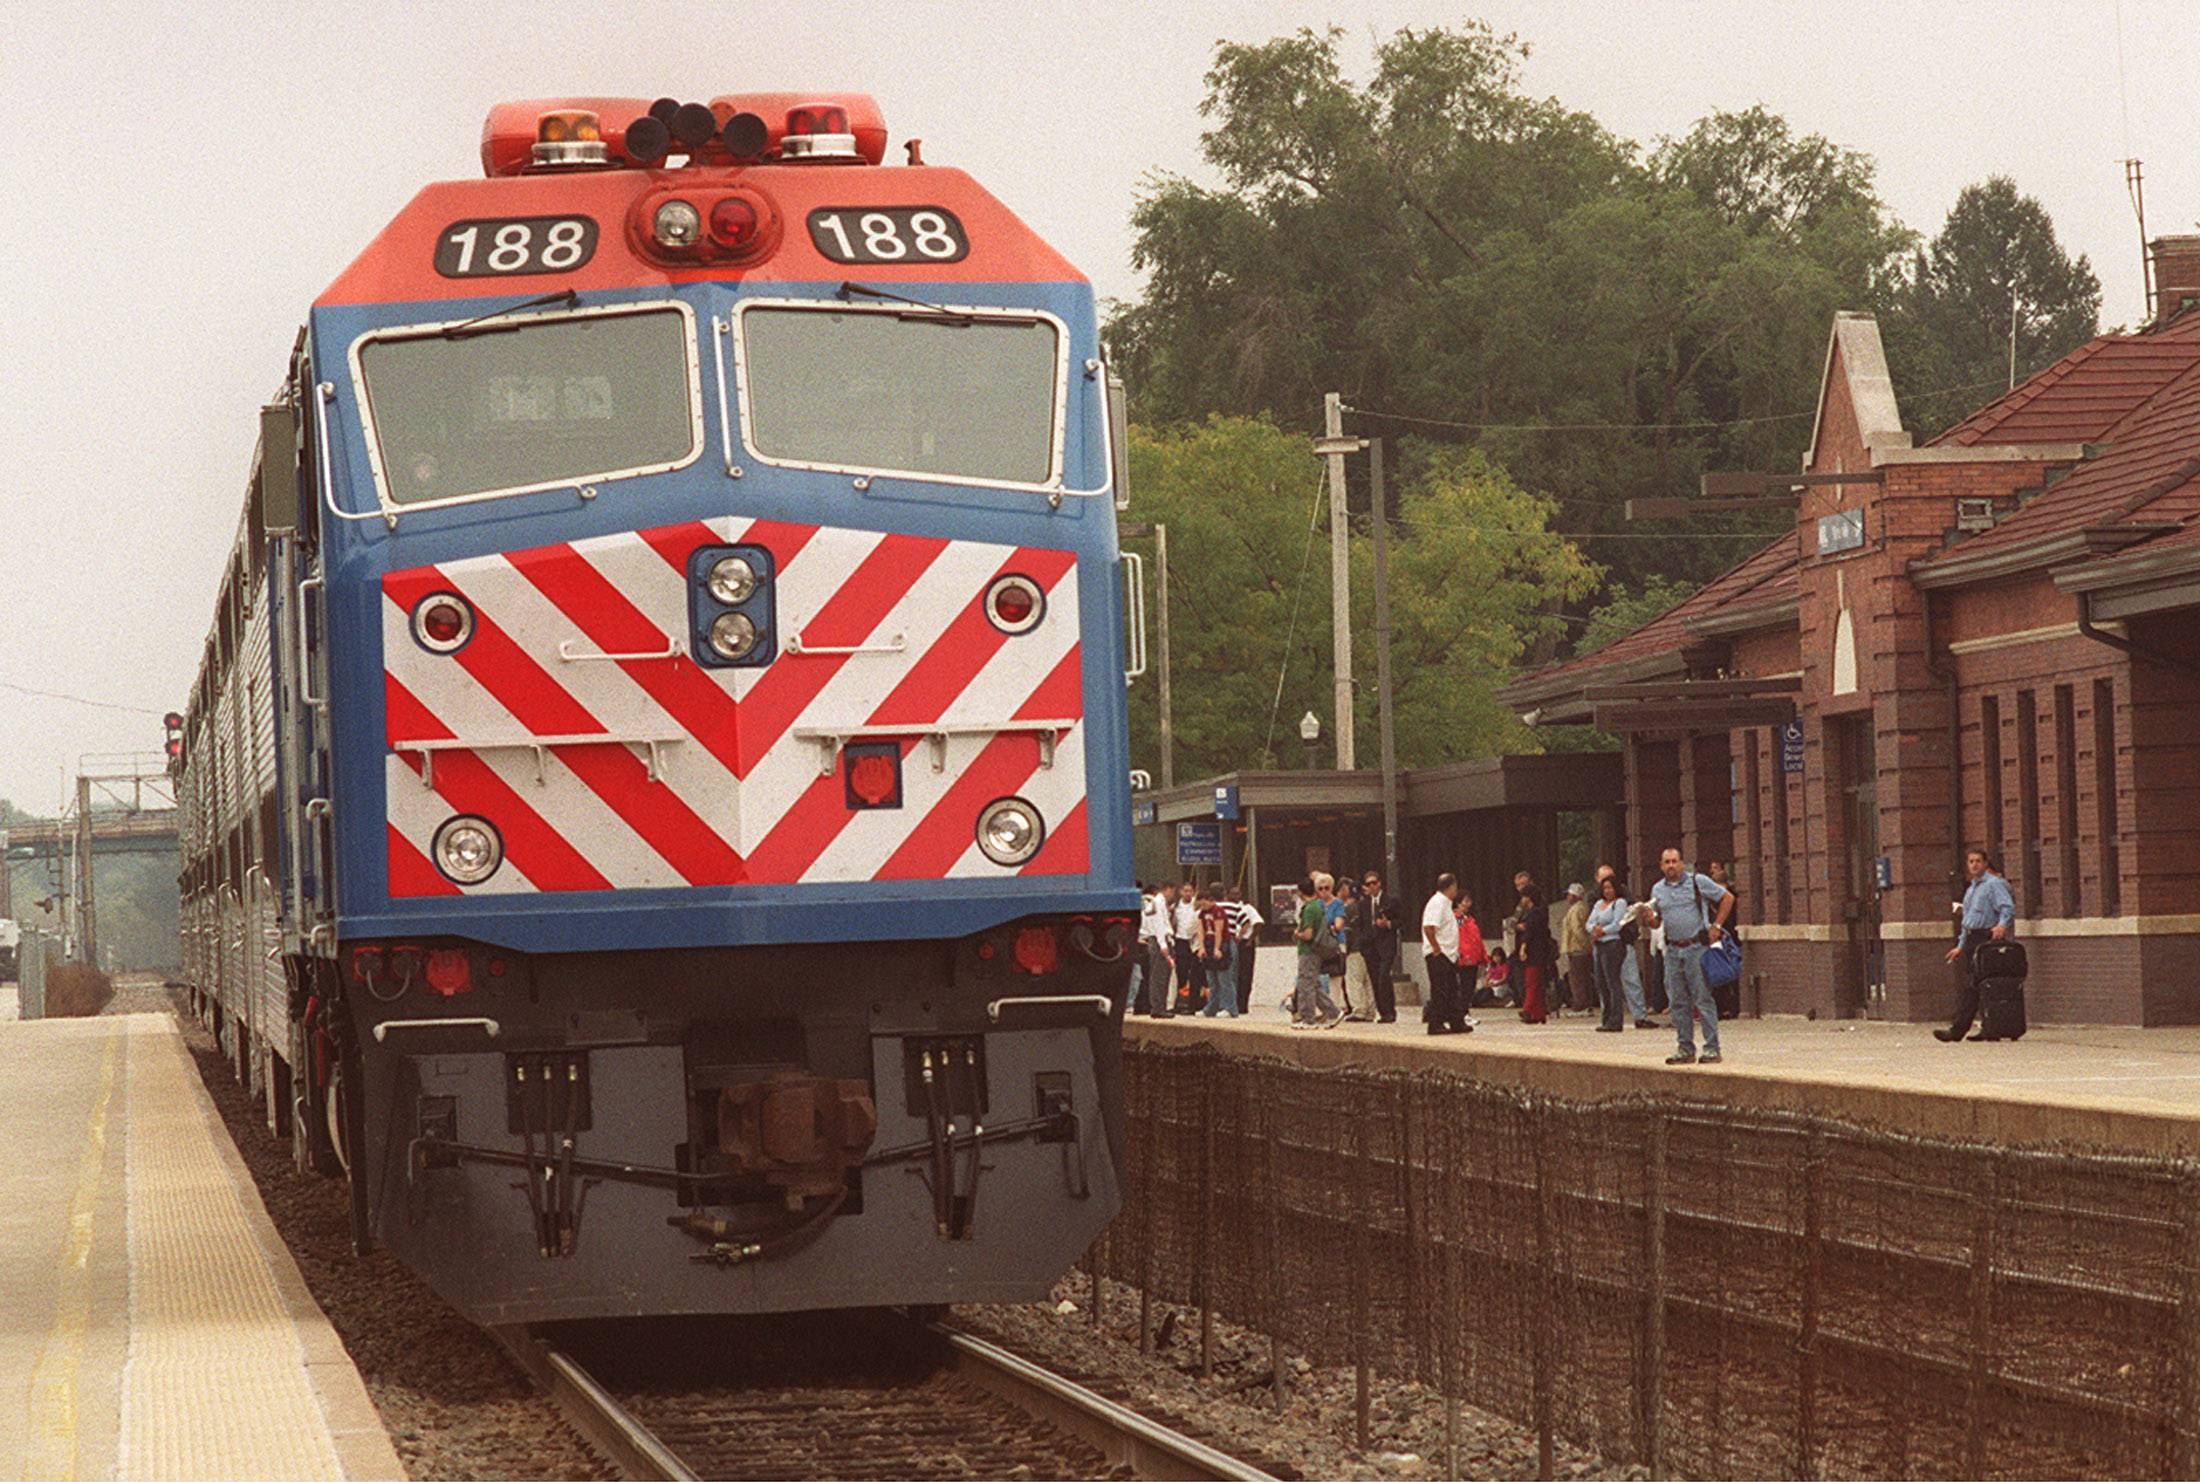 With thousands of trains running a year, Metra's track record is a good one, official said.